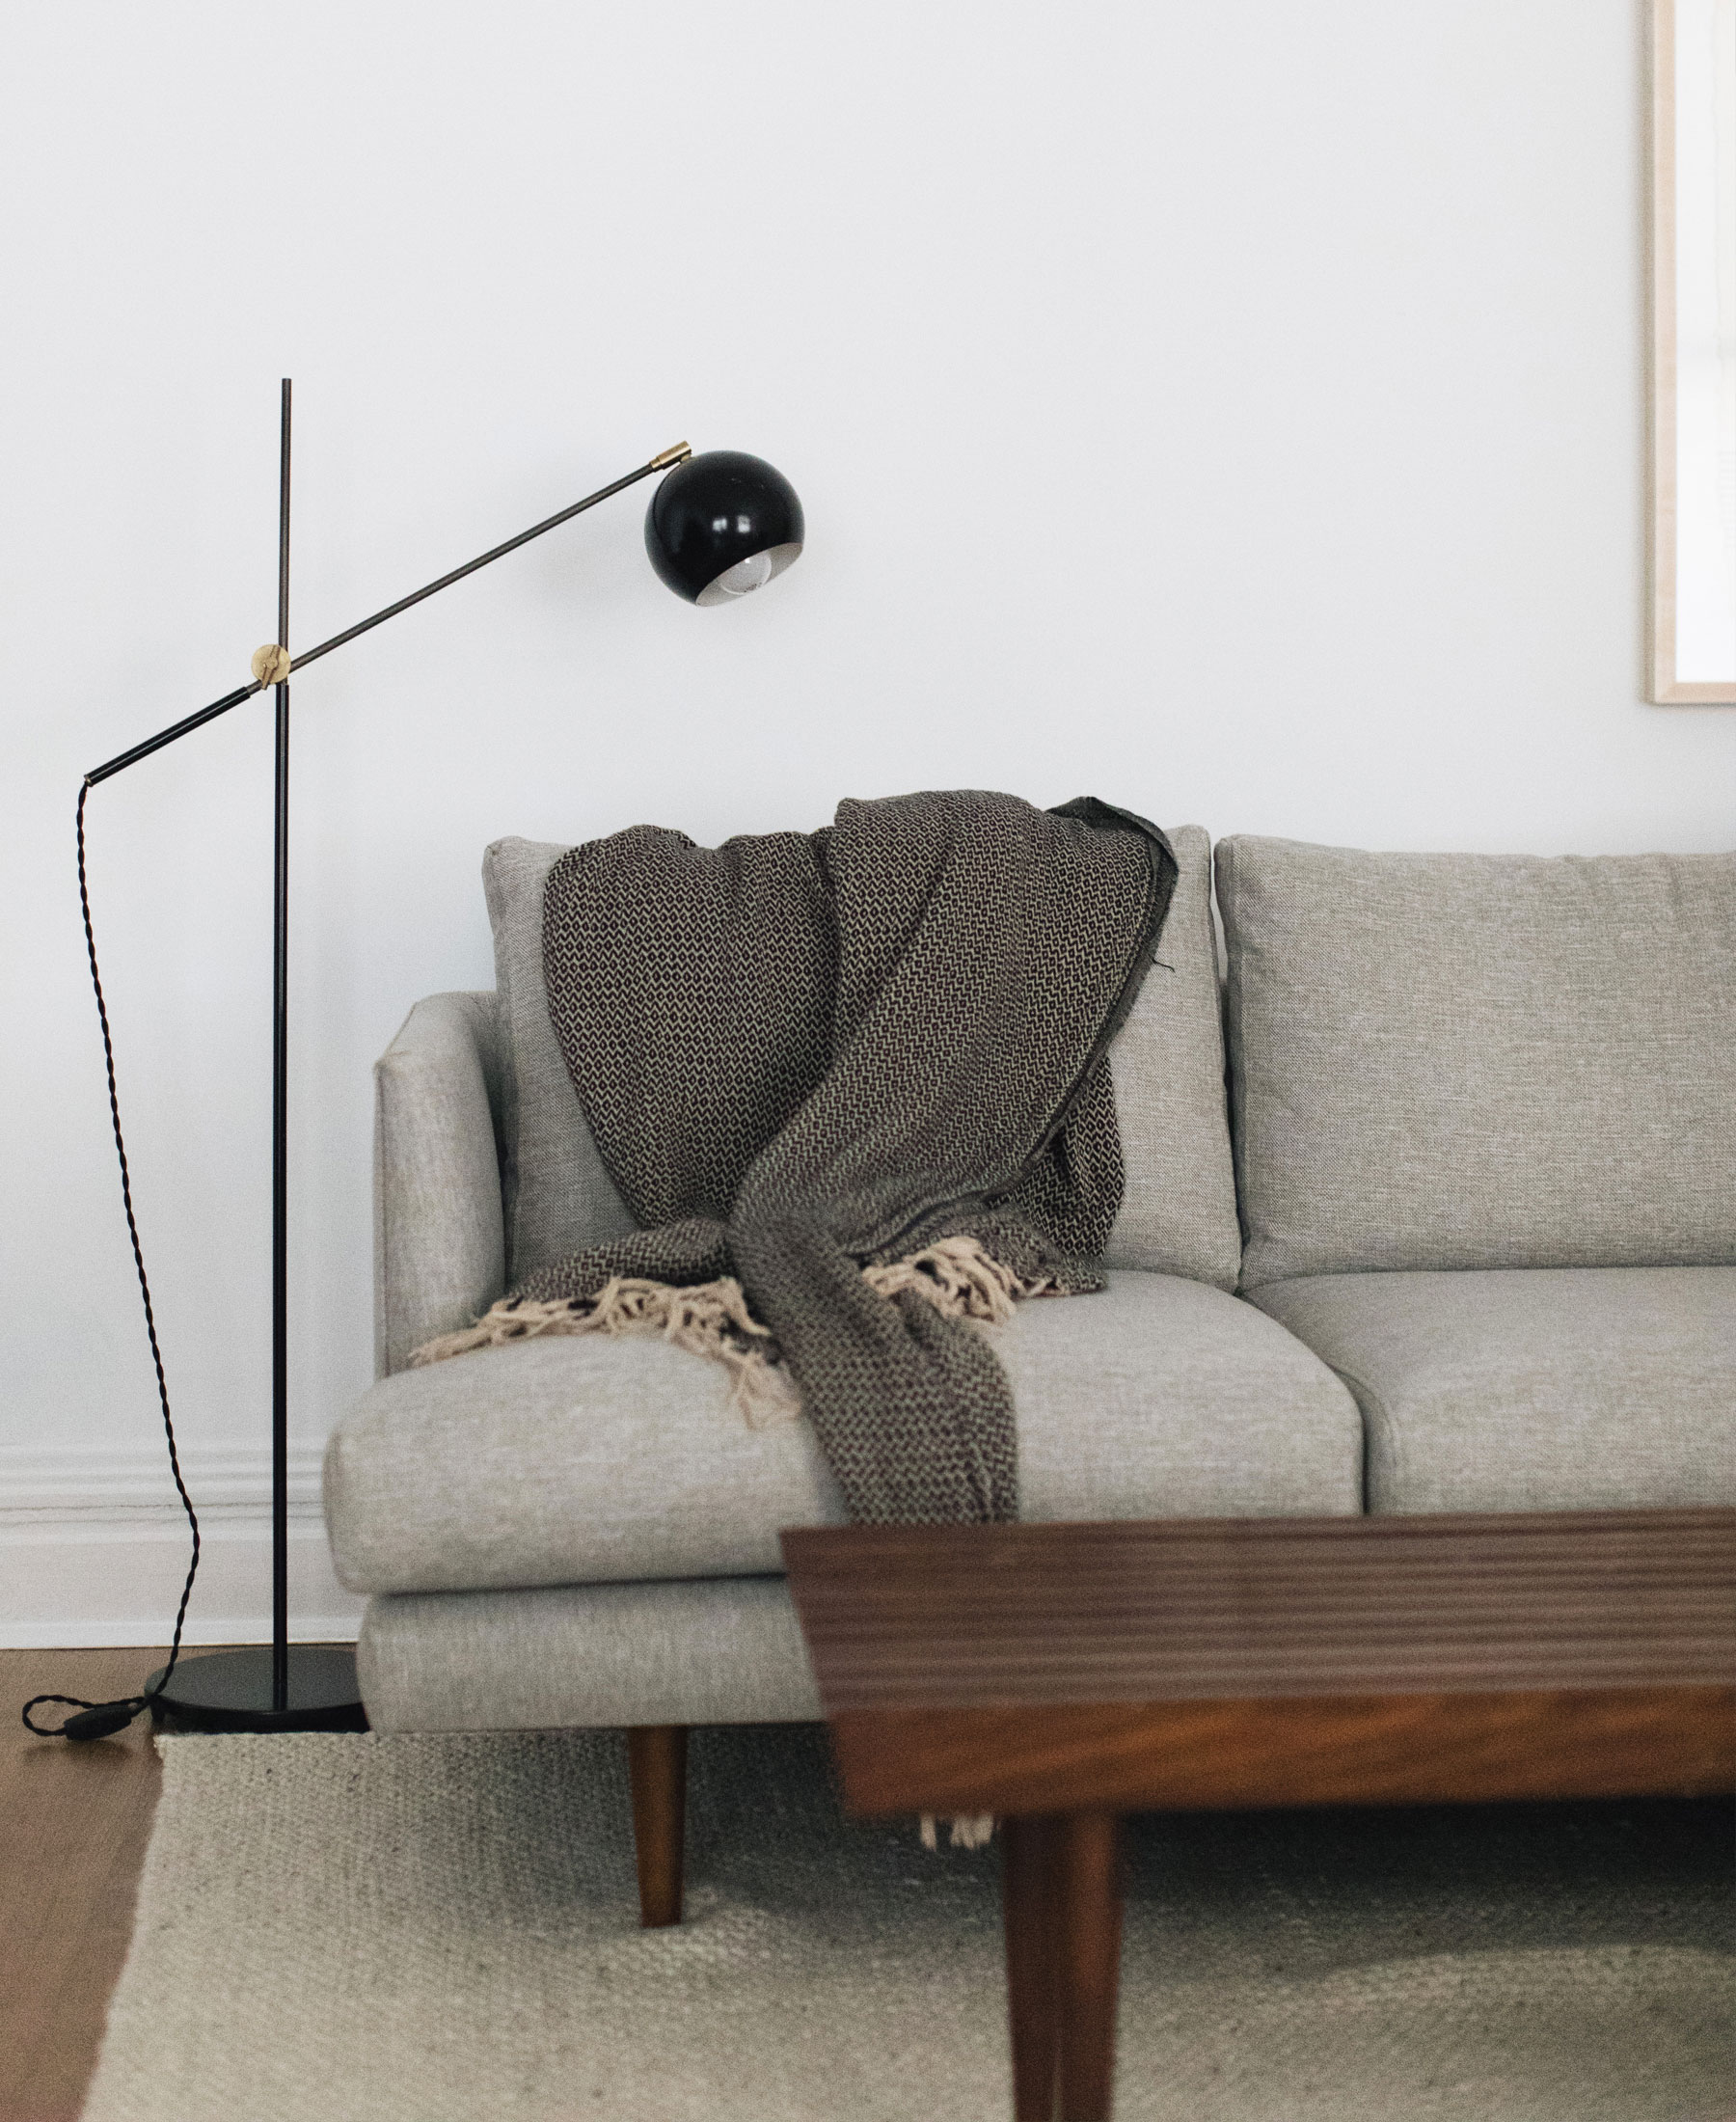 Angular mid-century modern lighting and a gray sofa.